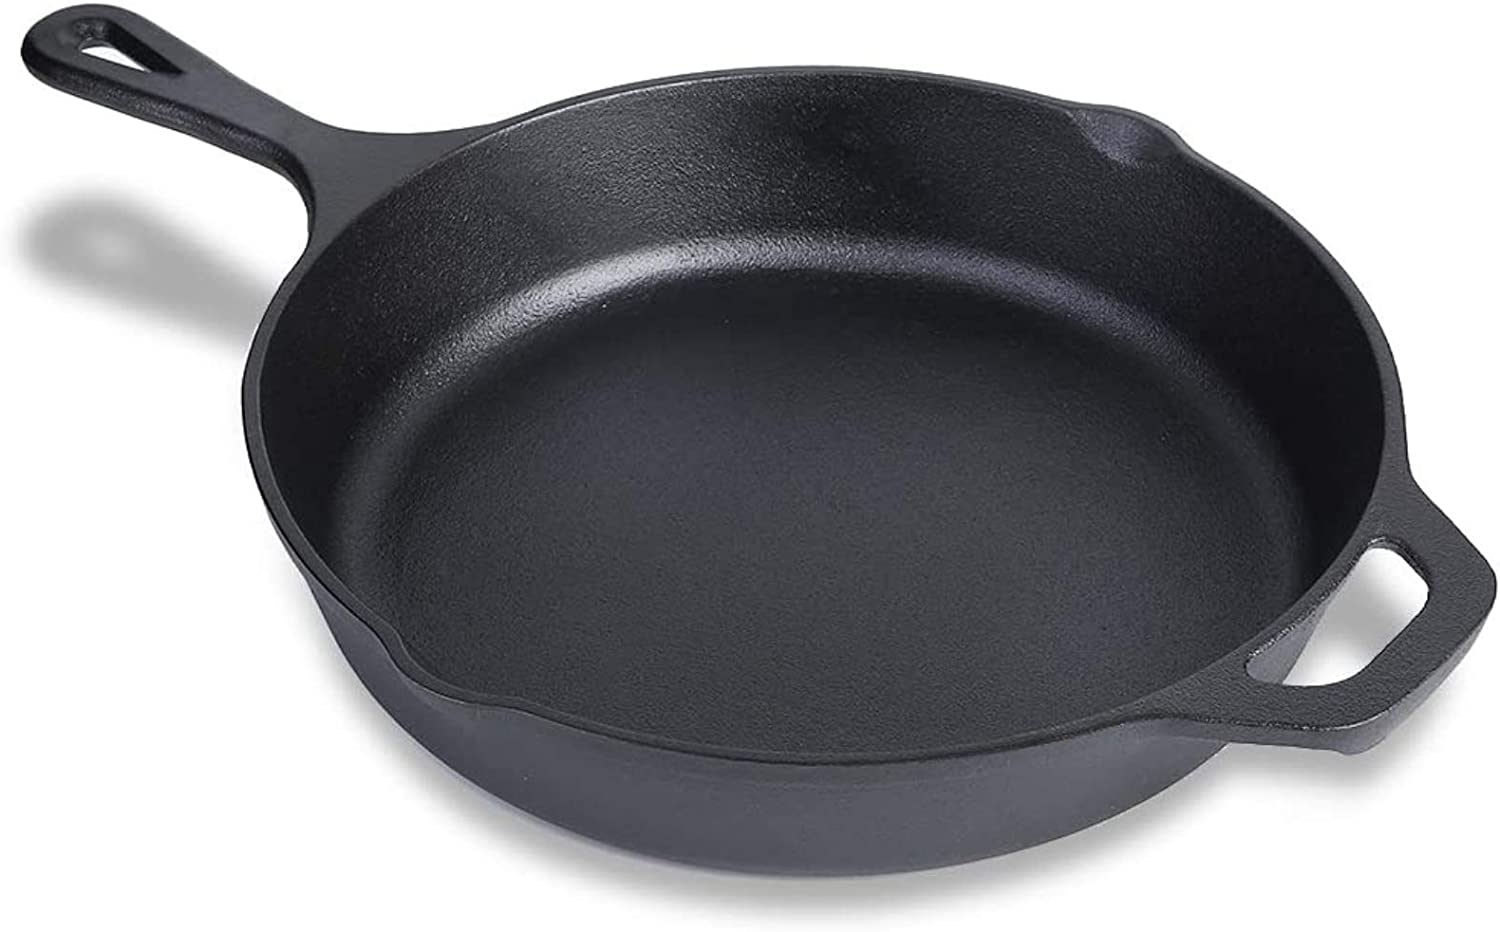 Cast Iron Skillet, Pre-Seasoned Non-Stick Like Surface for Cookware Oven, Grill Safe, Kitchen Deep Fryer, Restaurant Chef Quality (10inch)